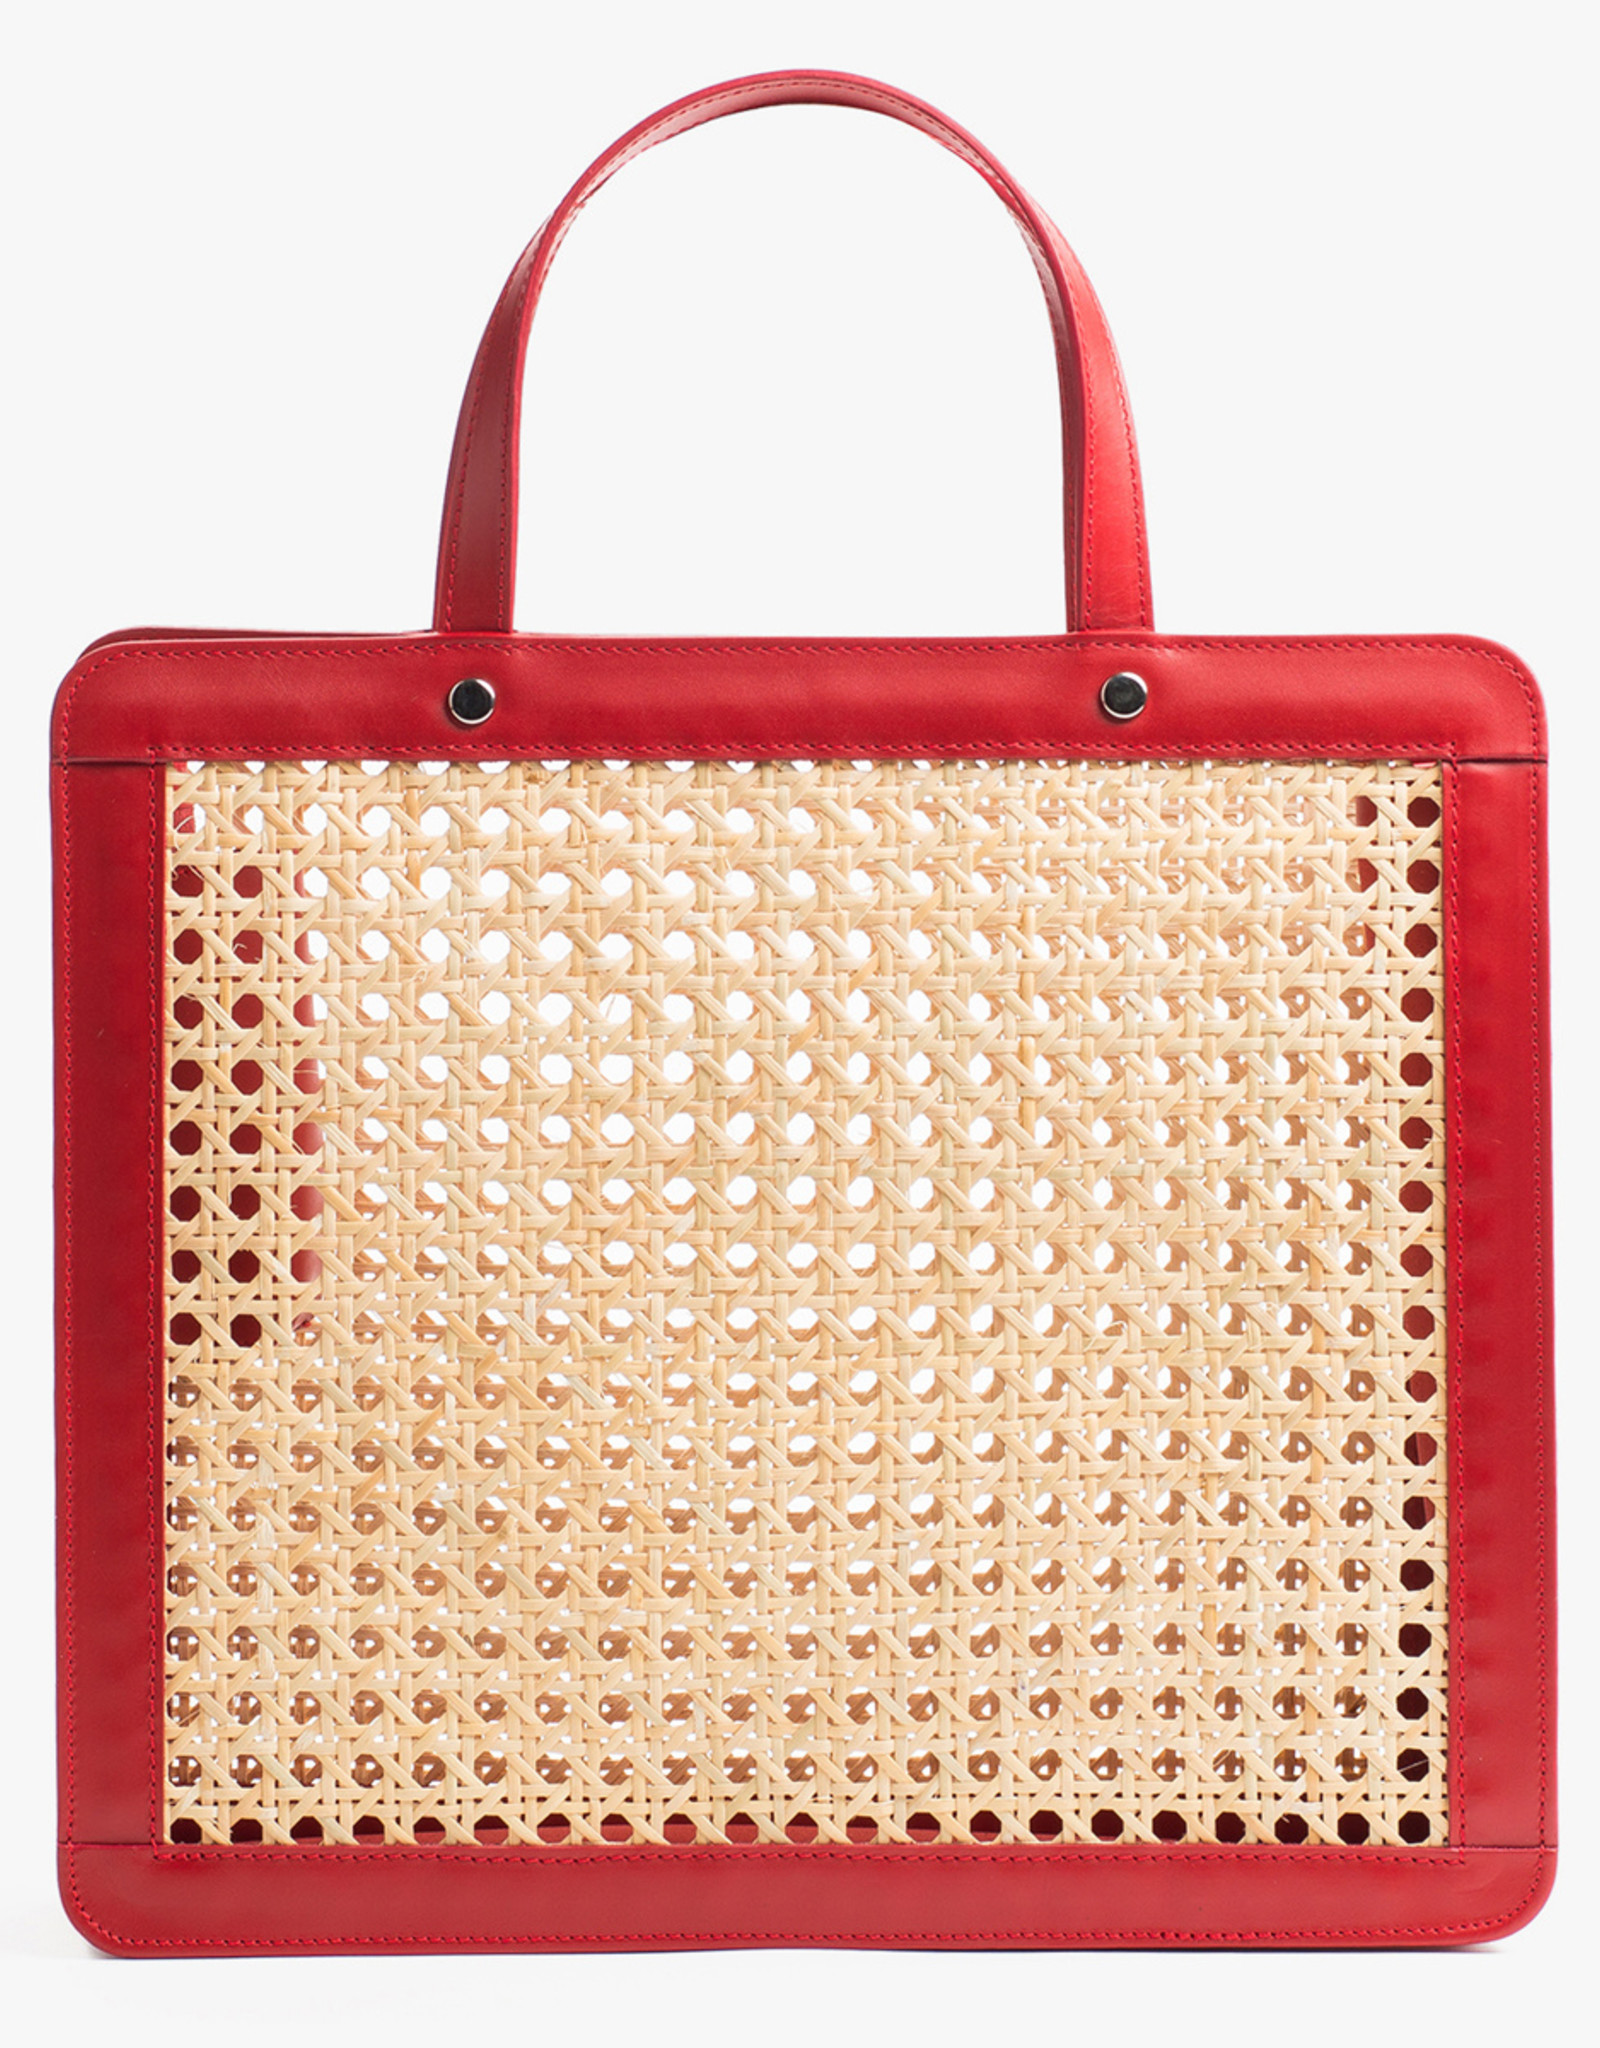 Classic Rattan Bag by Palmgrens | Red leather